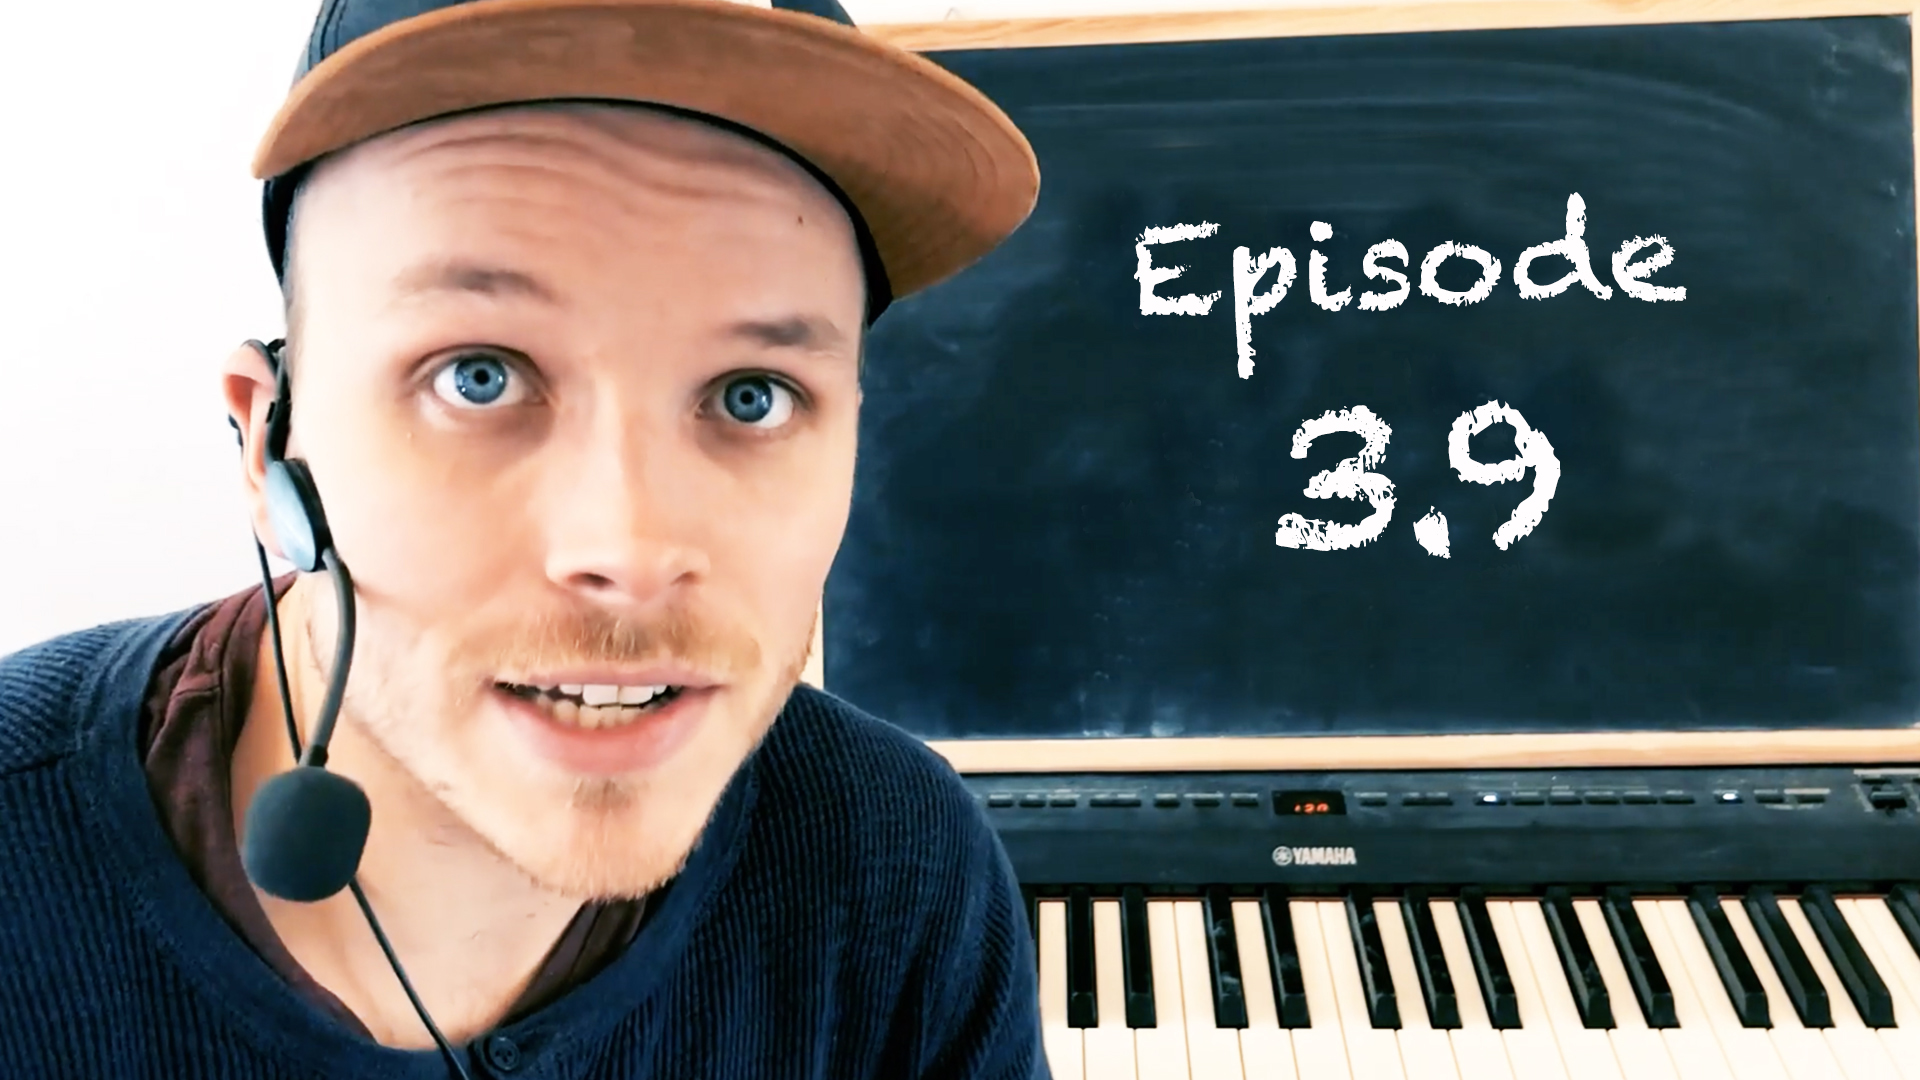 Ep 3. 9 Piano Midi Files Explained